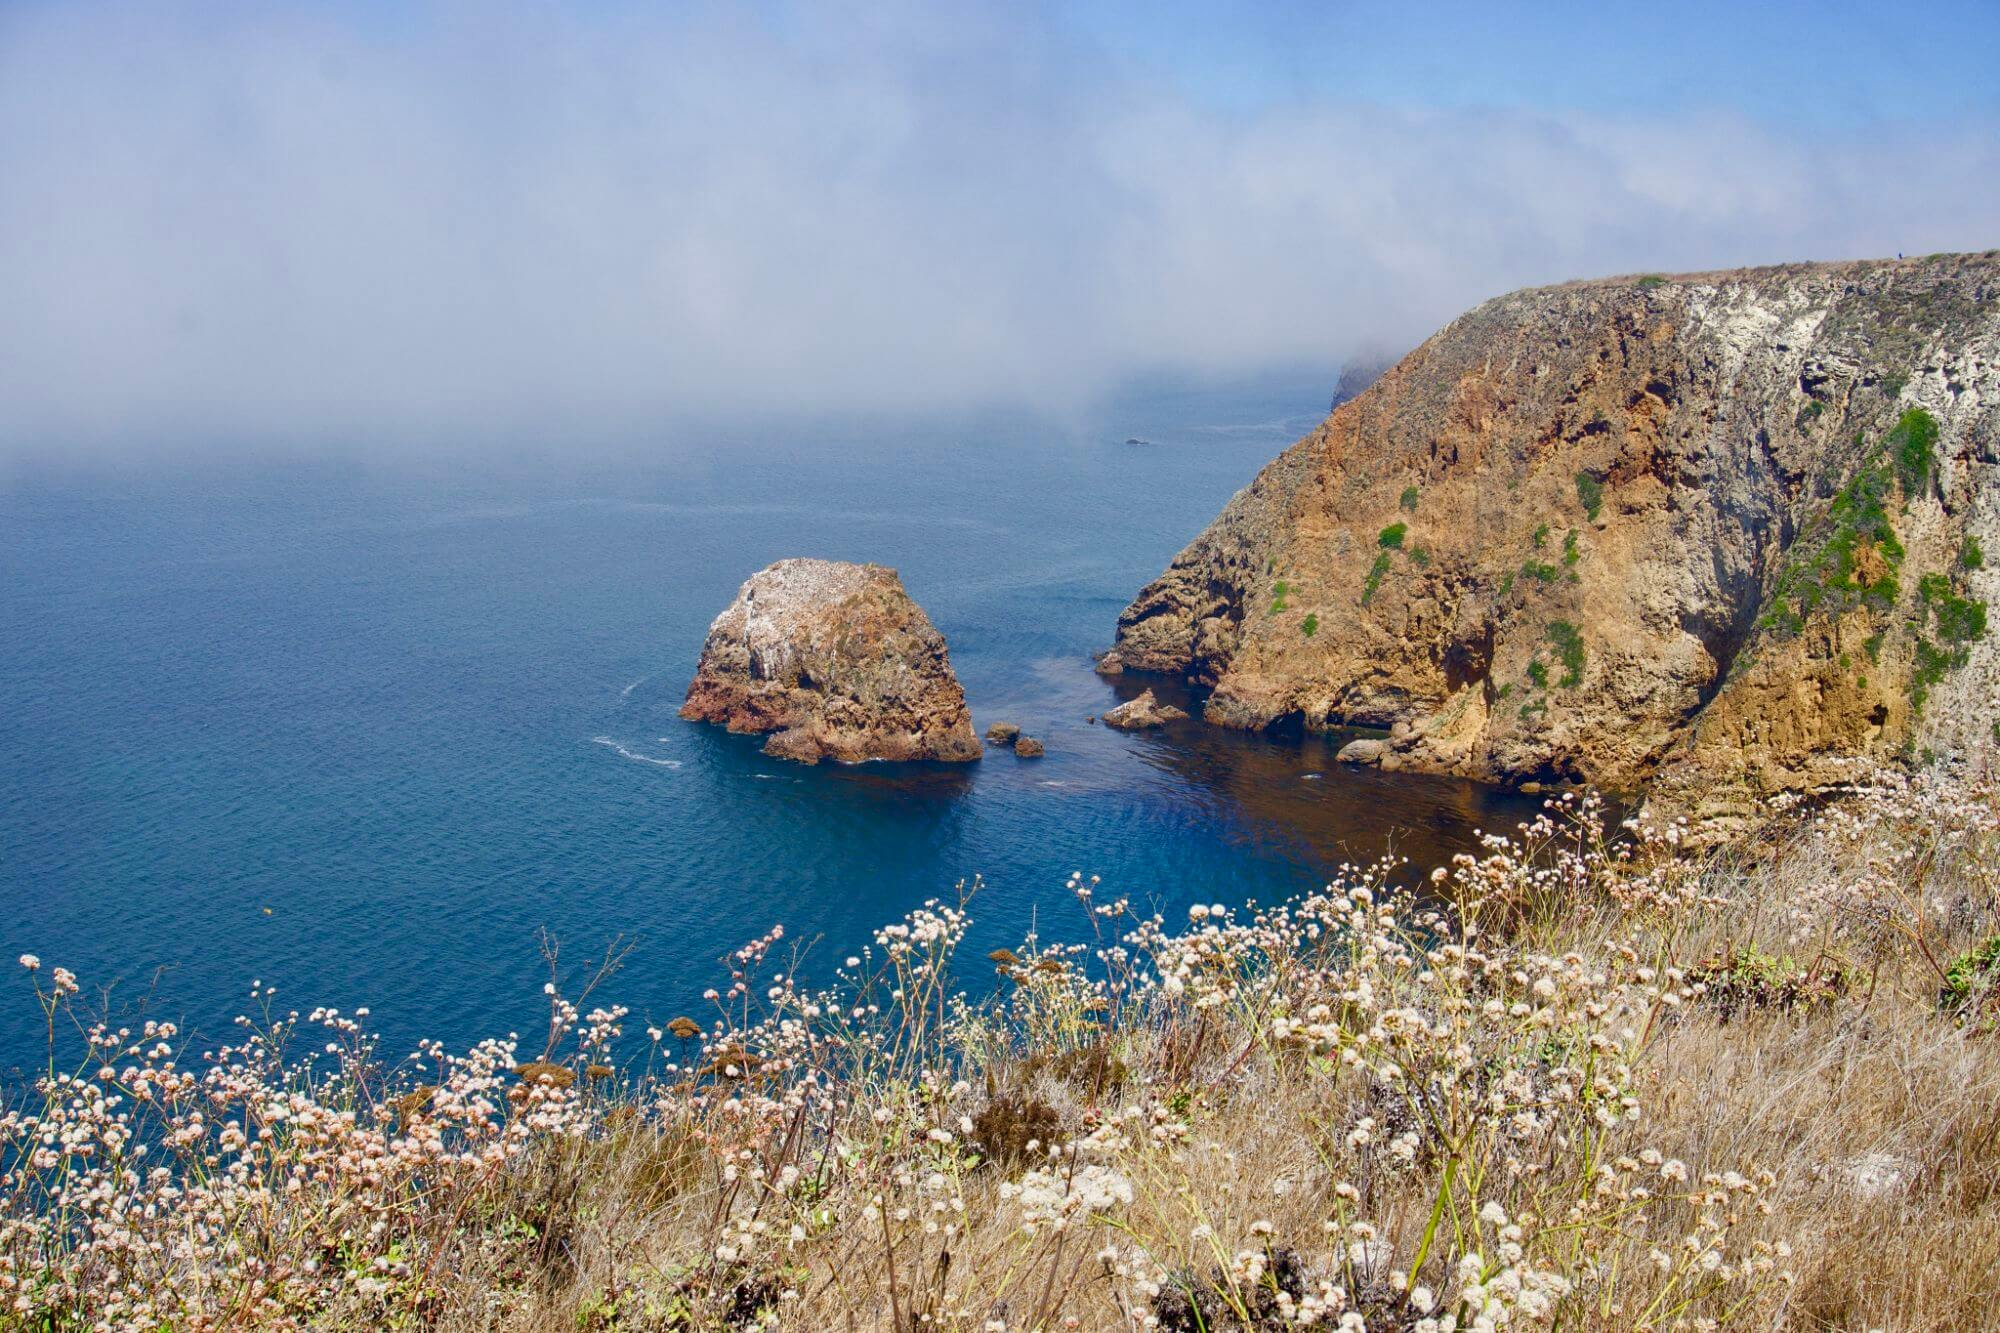 View of the ocean along the Potato Harbor Overlook Trail on Santa Cruz Island